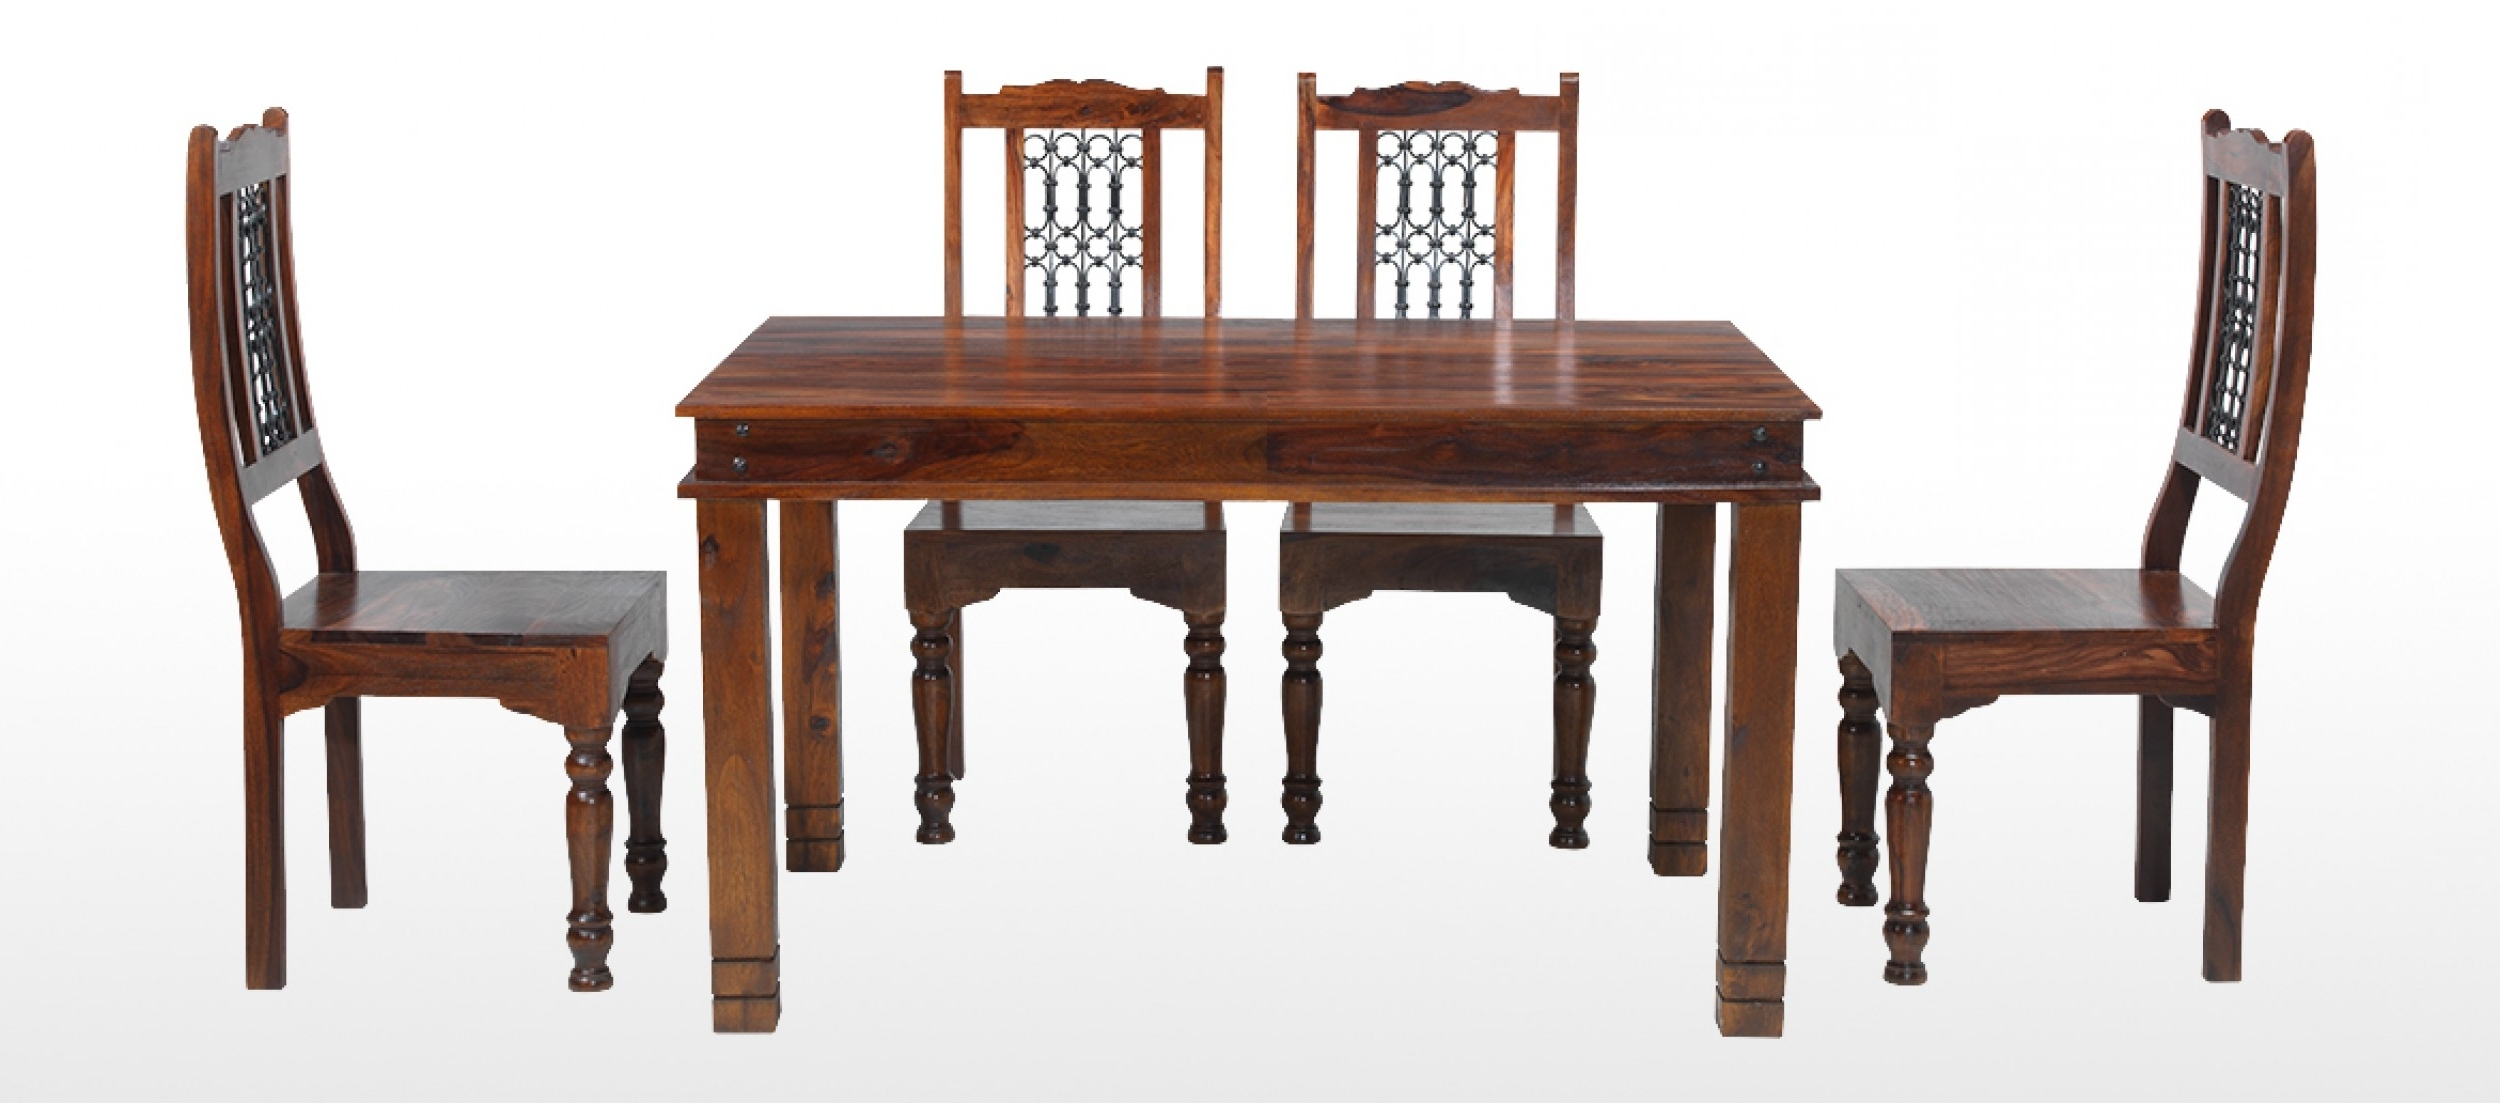 Sheesham Dining Tables And 4 Chairs Regarding Fashionable Chunky Wood Dining Table And Chairs Jali Sheesham 120 Cm Chunky (View 12 of 25)